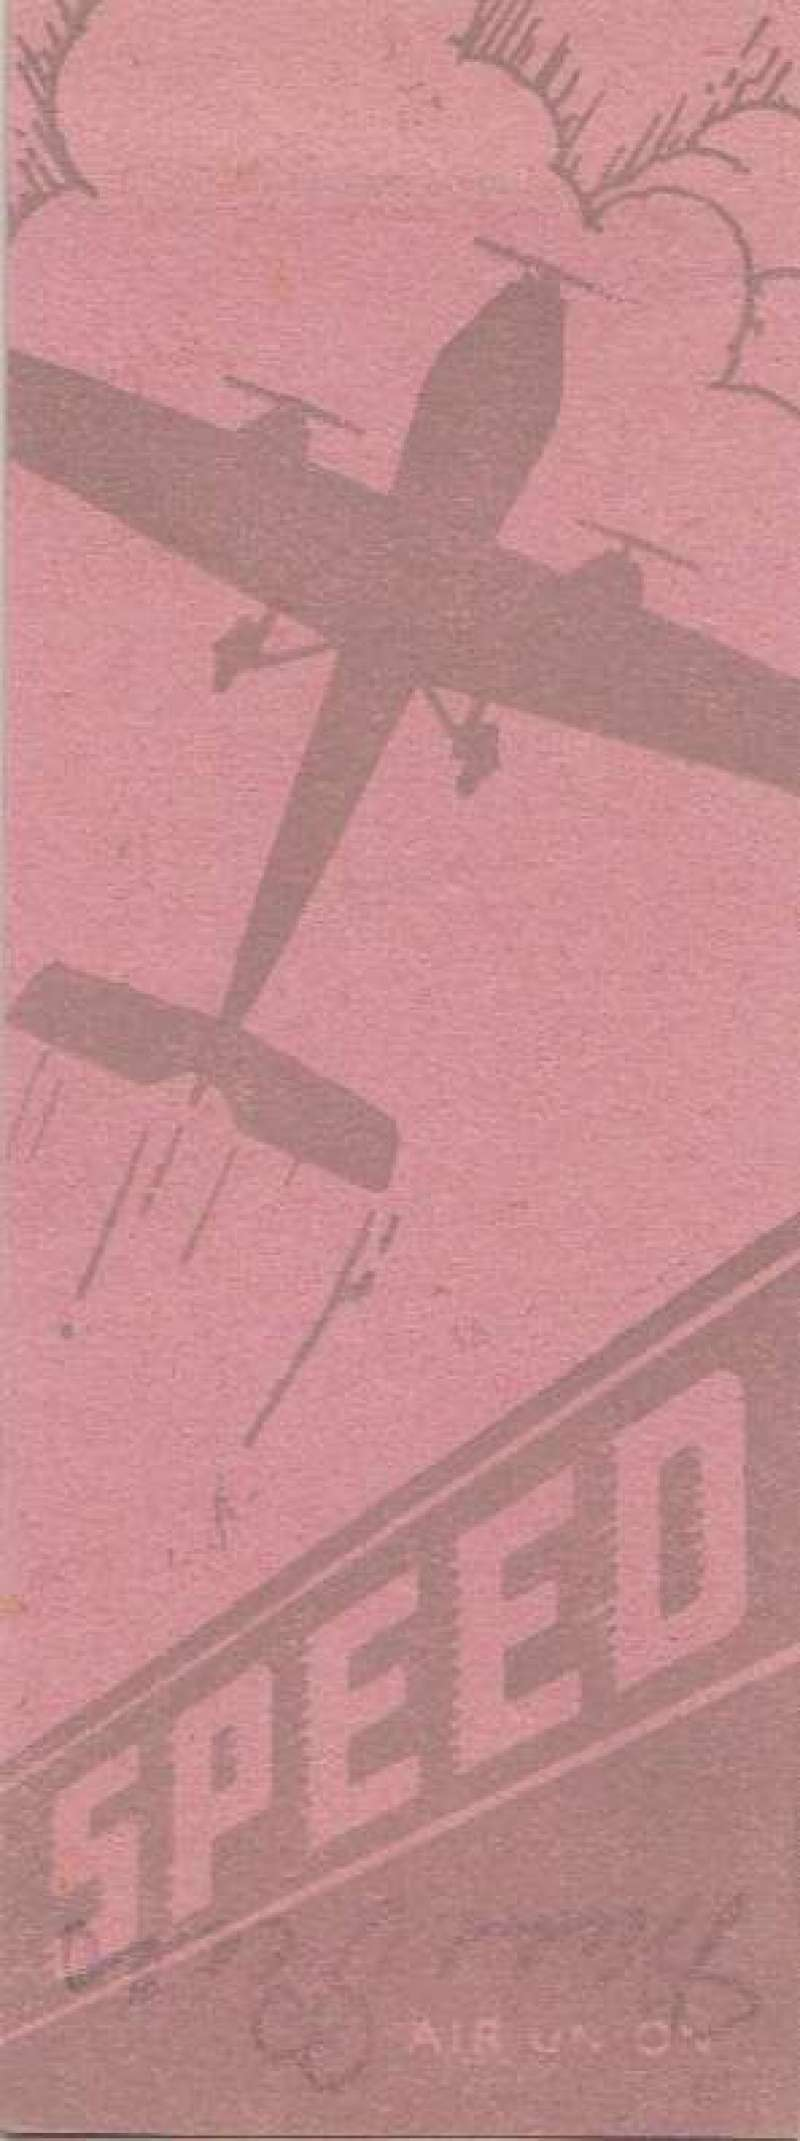 (Ephemera) Air Union, grey/pink publicity book mark,14x5cm, 'Speed' logo on one side, flight times for various destinations on the other, scarce. Air Union was a French airline operating from 1923-1933.